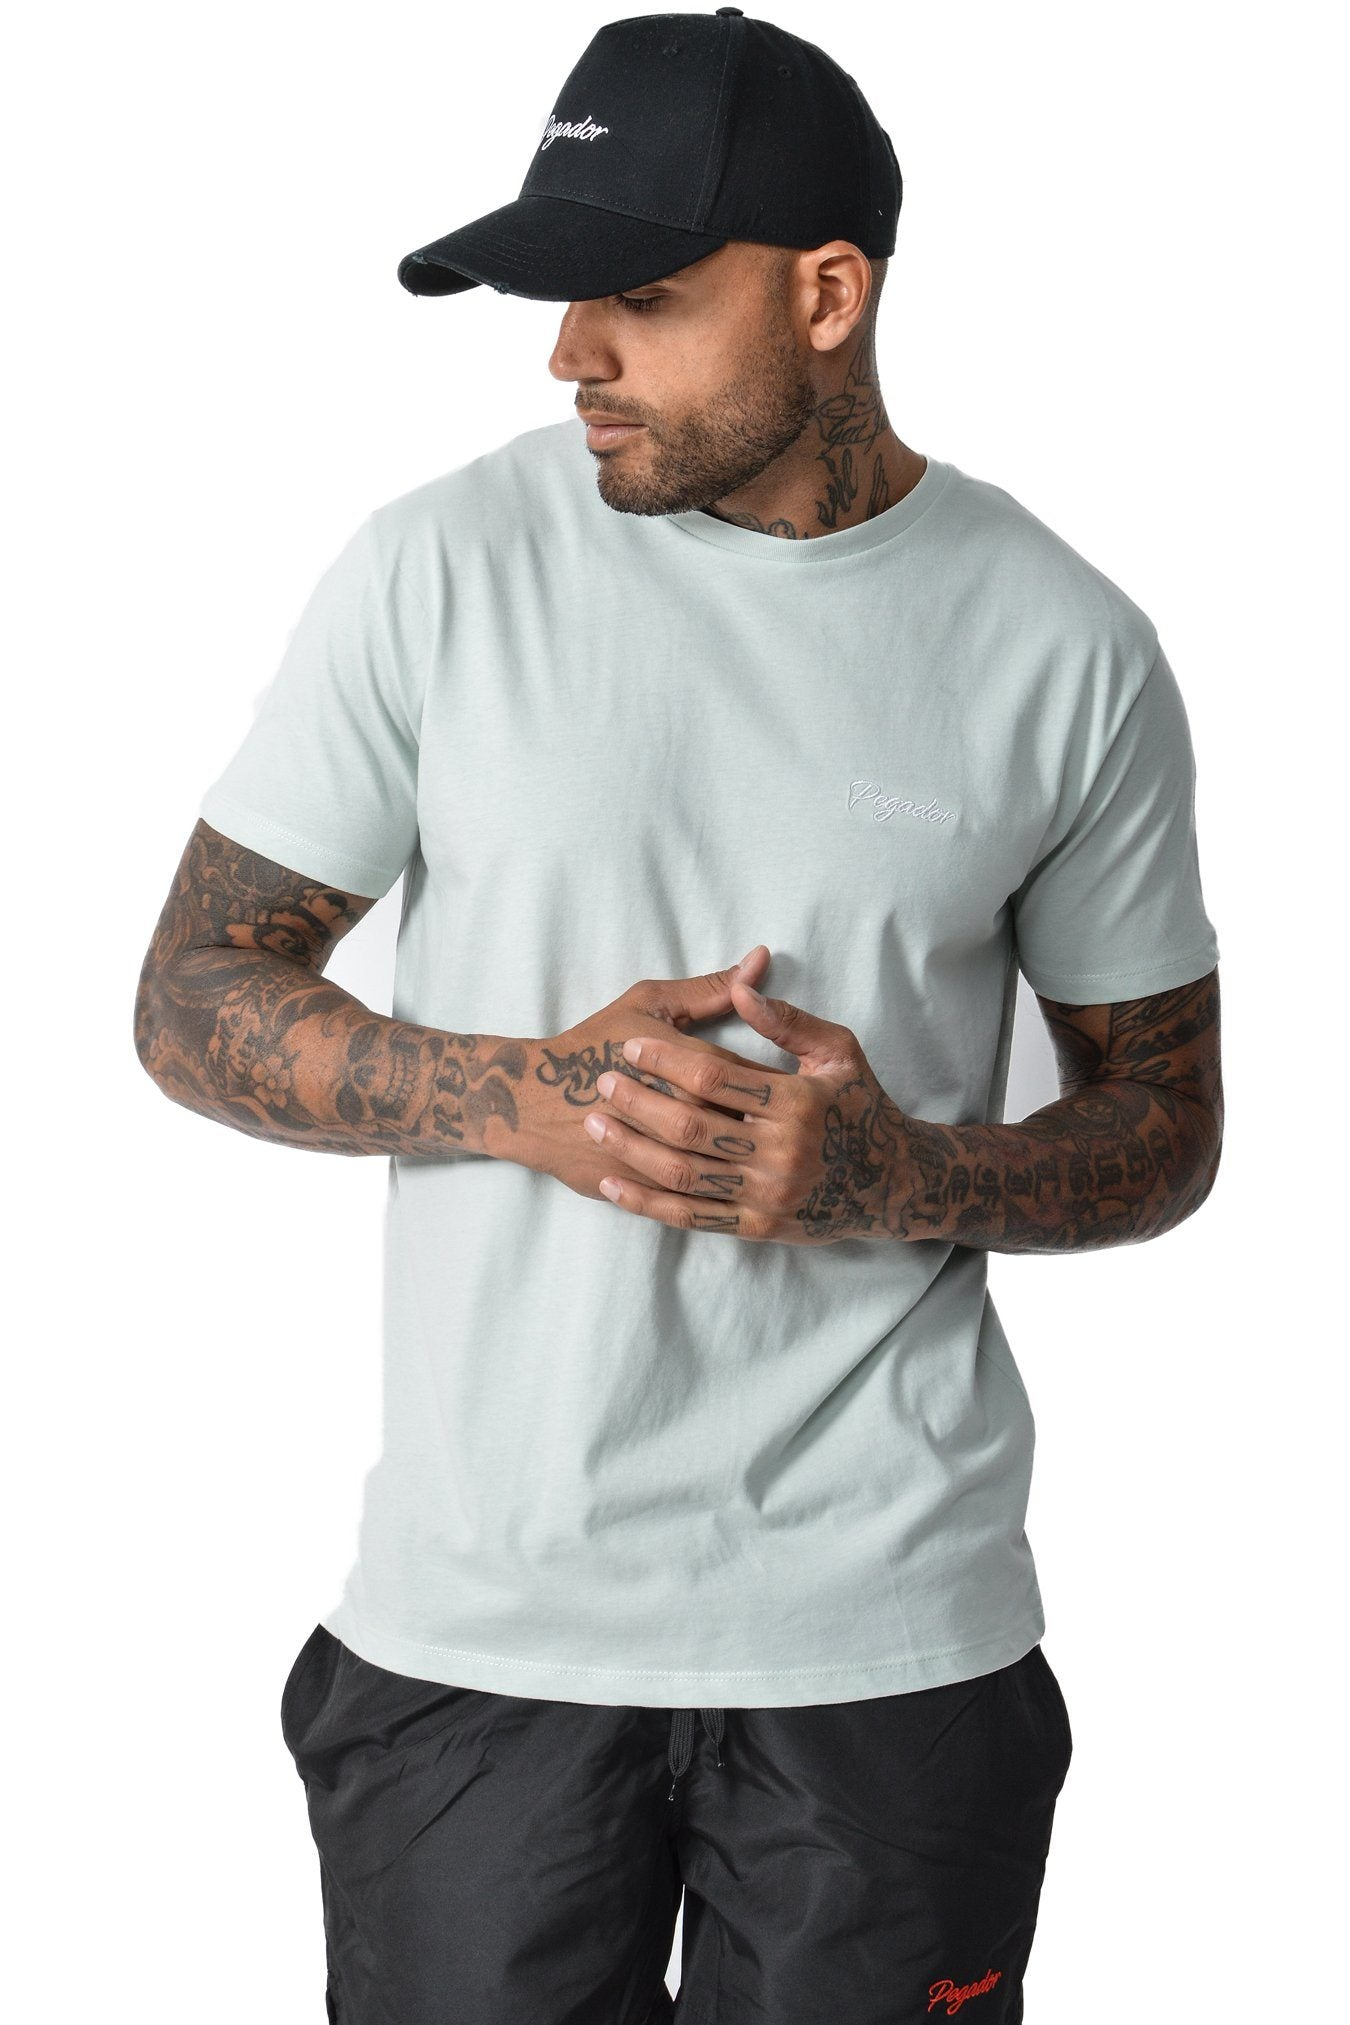 Beo T-Shirt Light Green - PEGADOR - Dominate the Hype